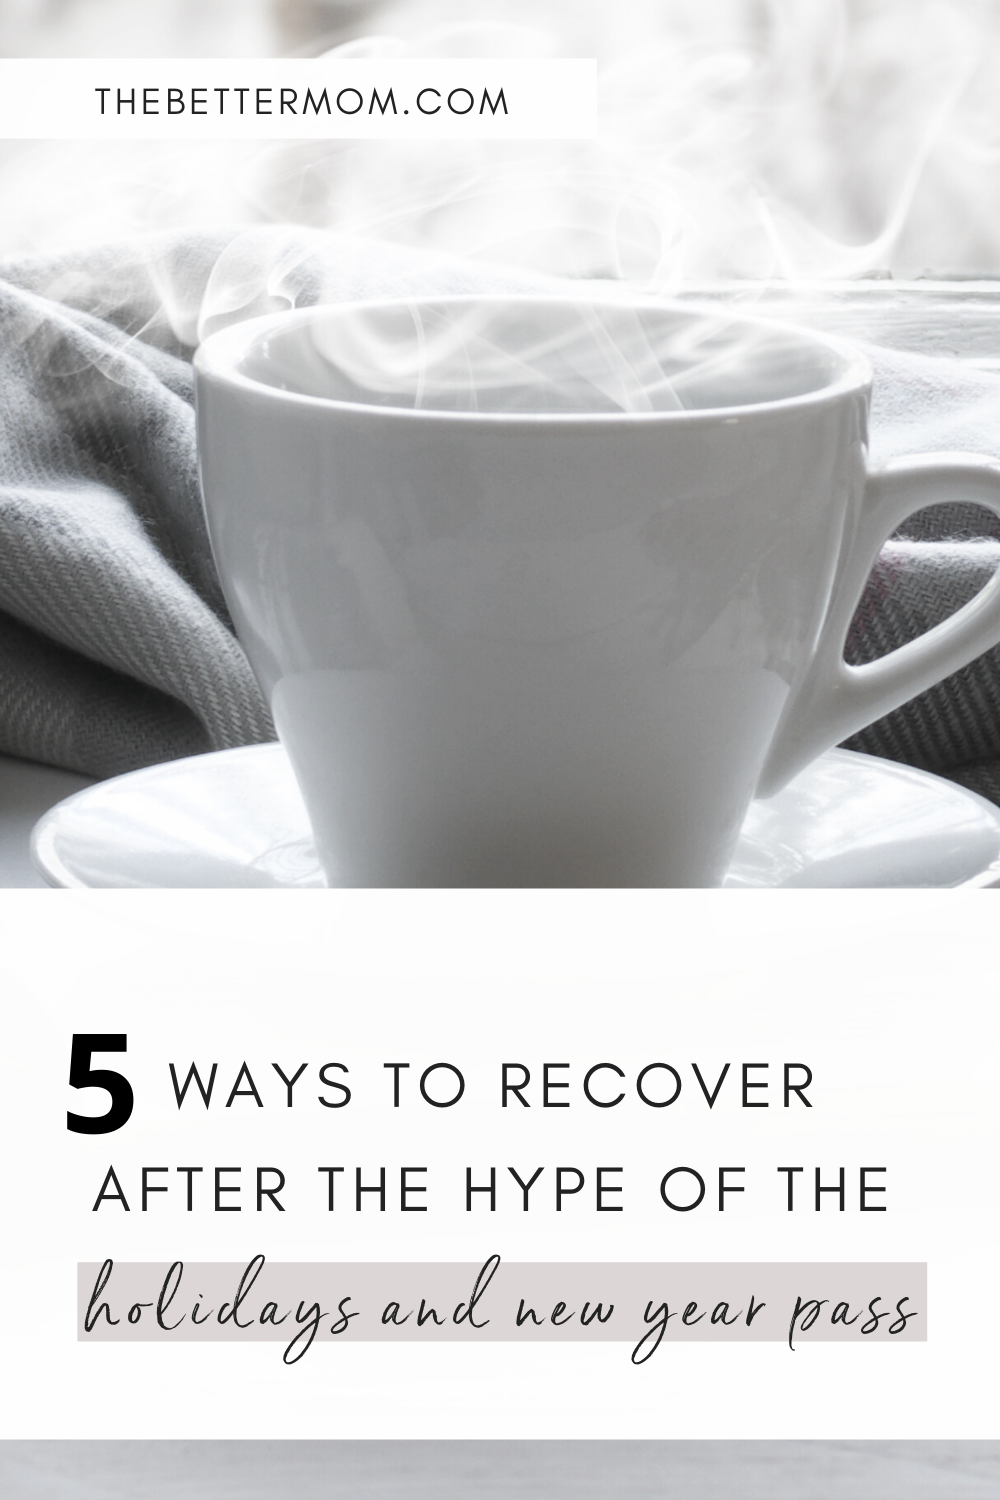 The holidays are over and the New Year hype is winding down, so now what? If you are feeling anything like we are, it is time for a break...time to rest. There is no better season or time to learn how to recover. Here are a few ideas we have to help you get started!